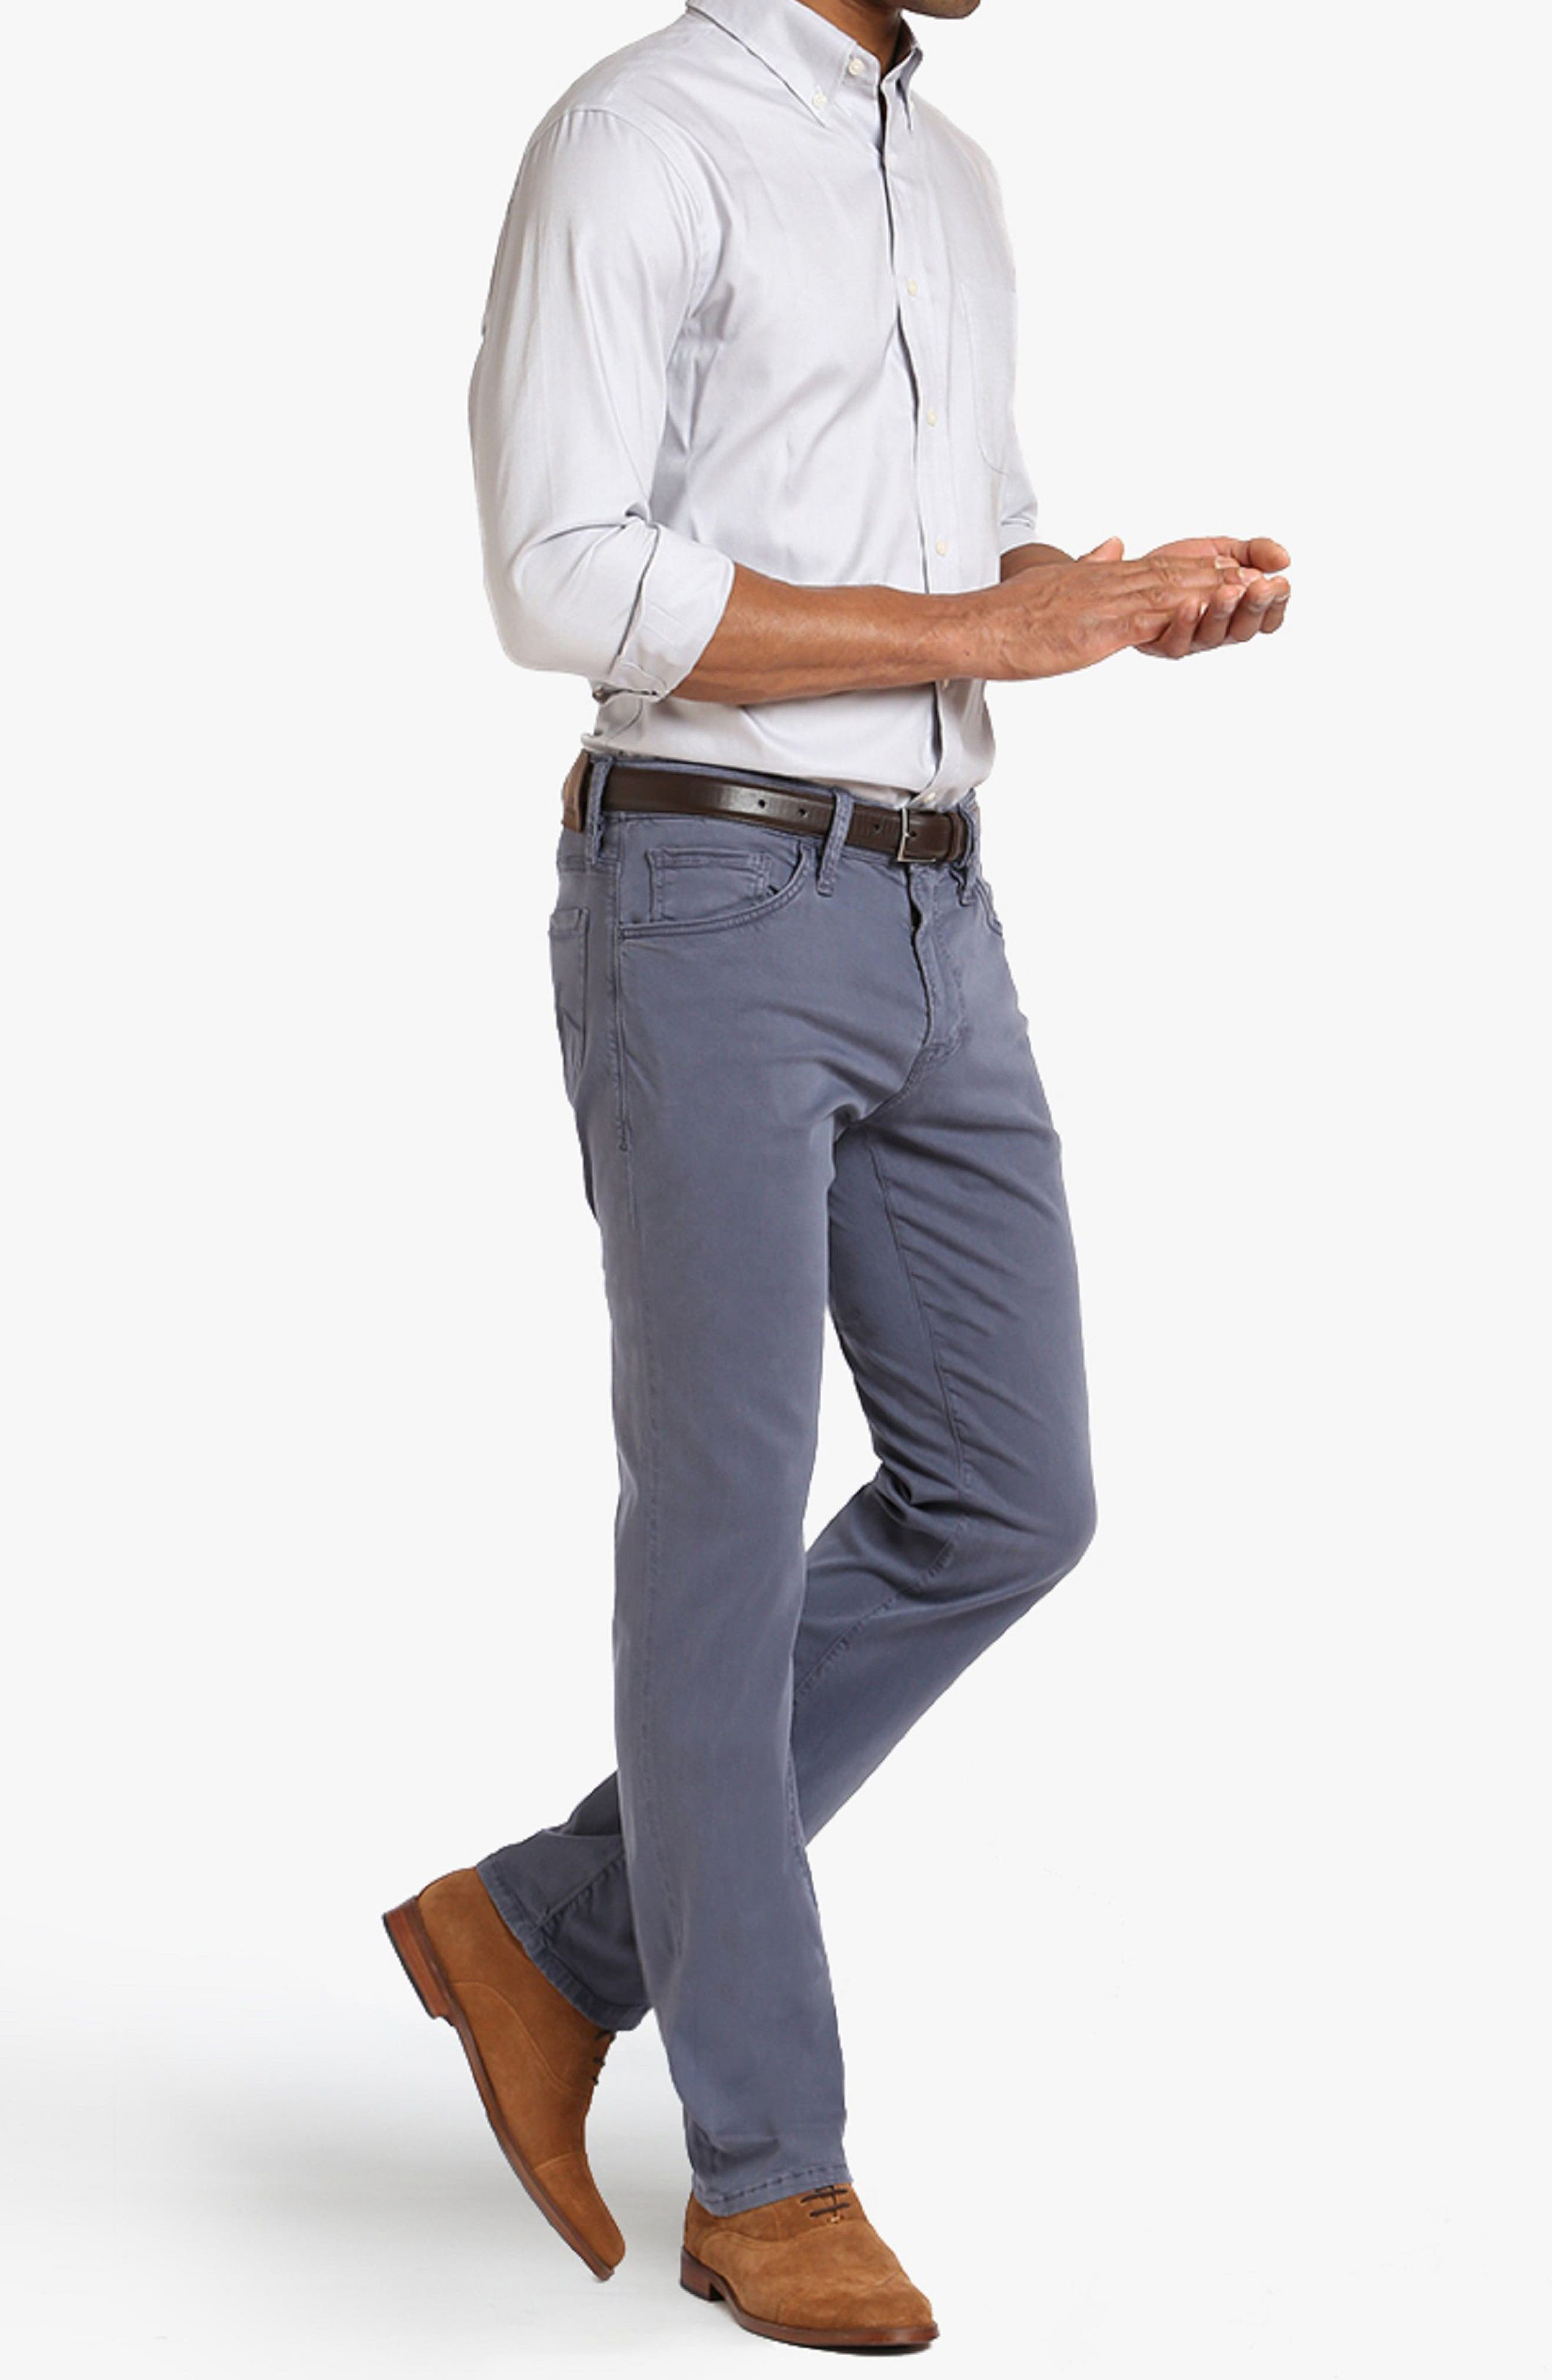 Charisma Relaxed Fit Jeans,                             Alternate thumbnail 5, color,                             Horizon Twill